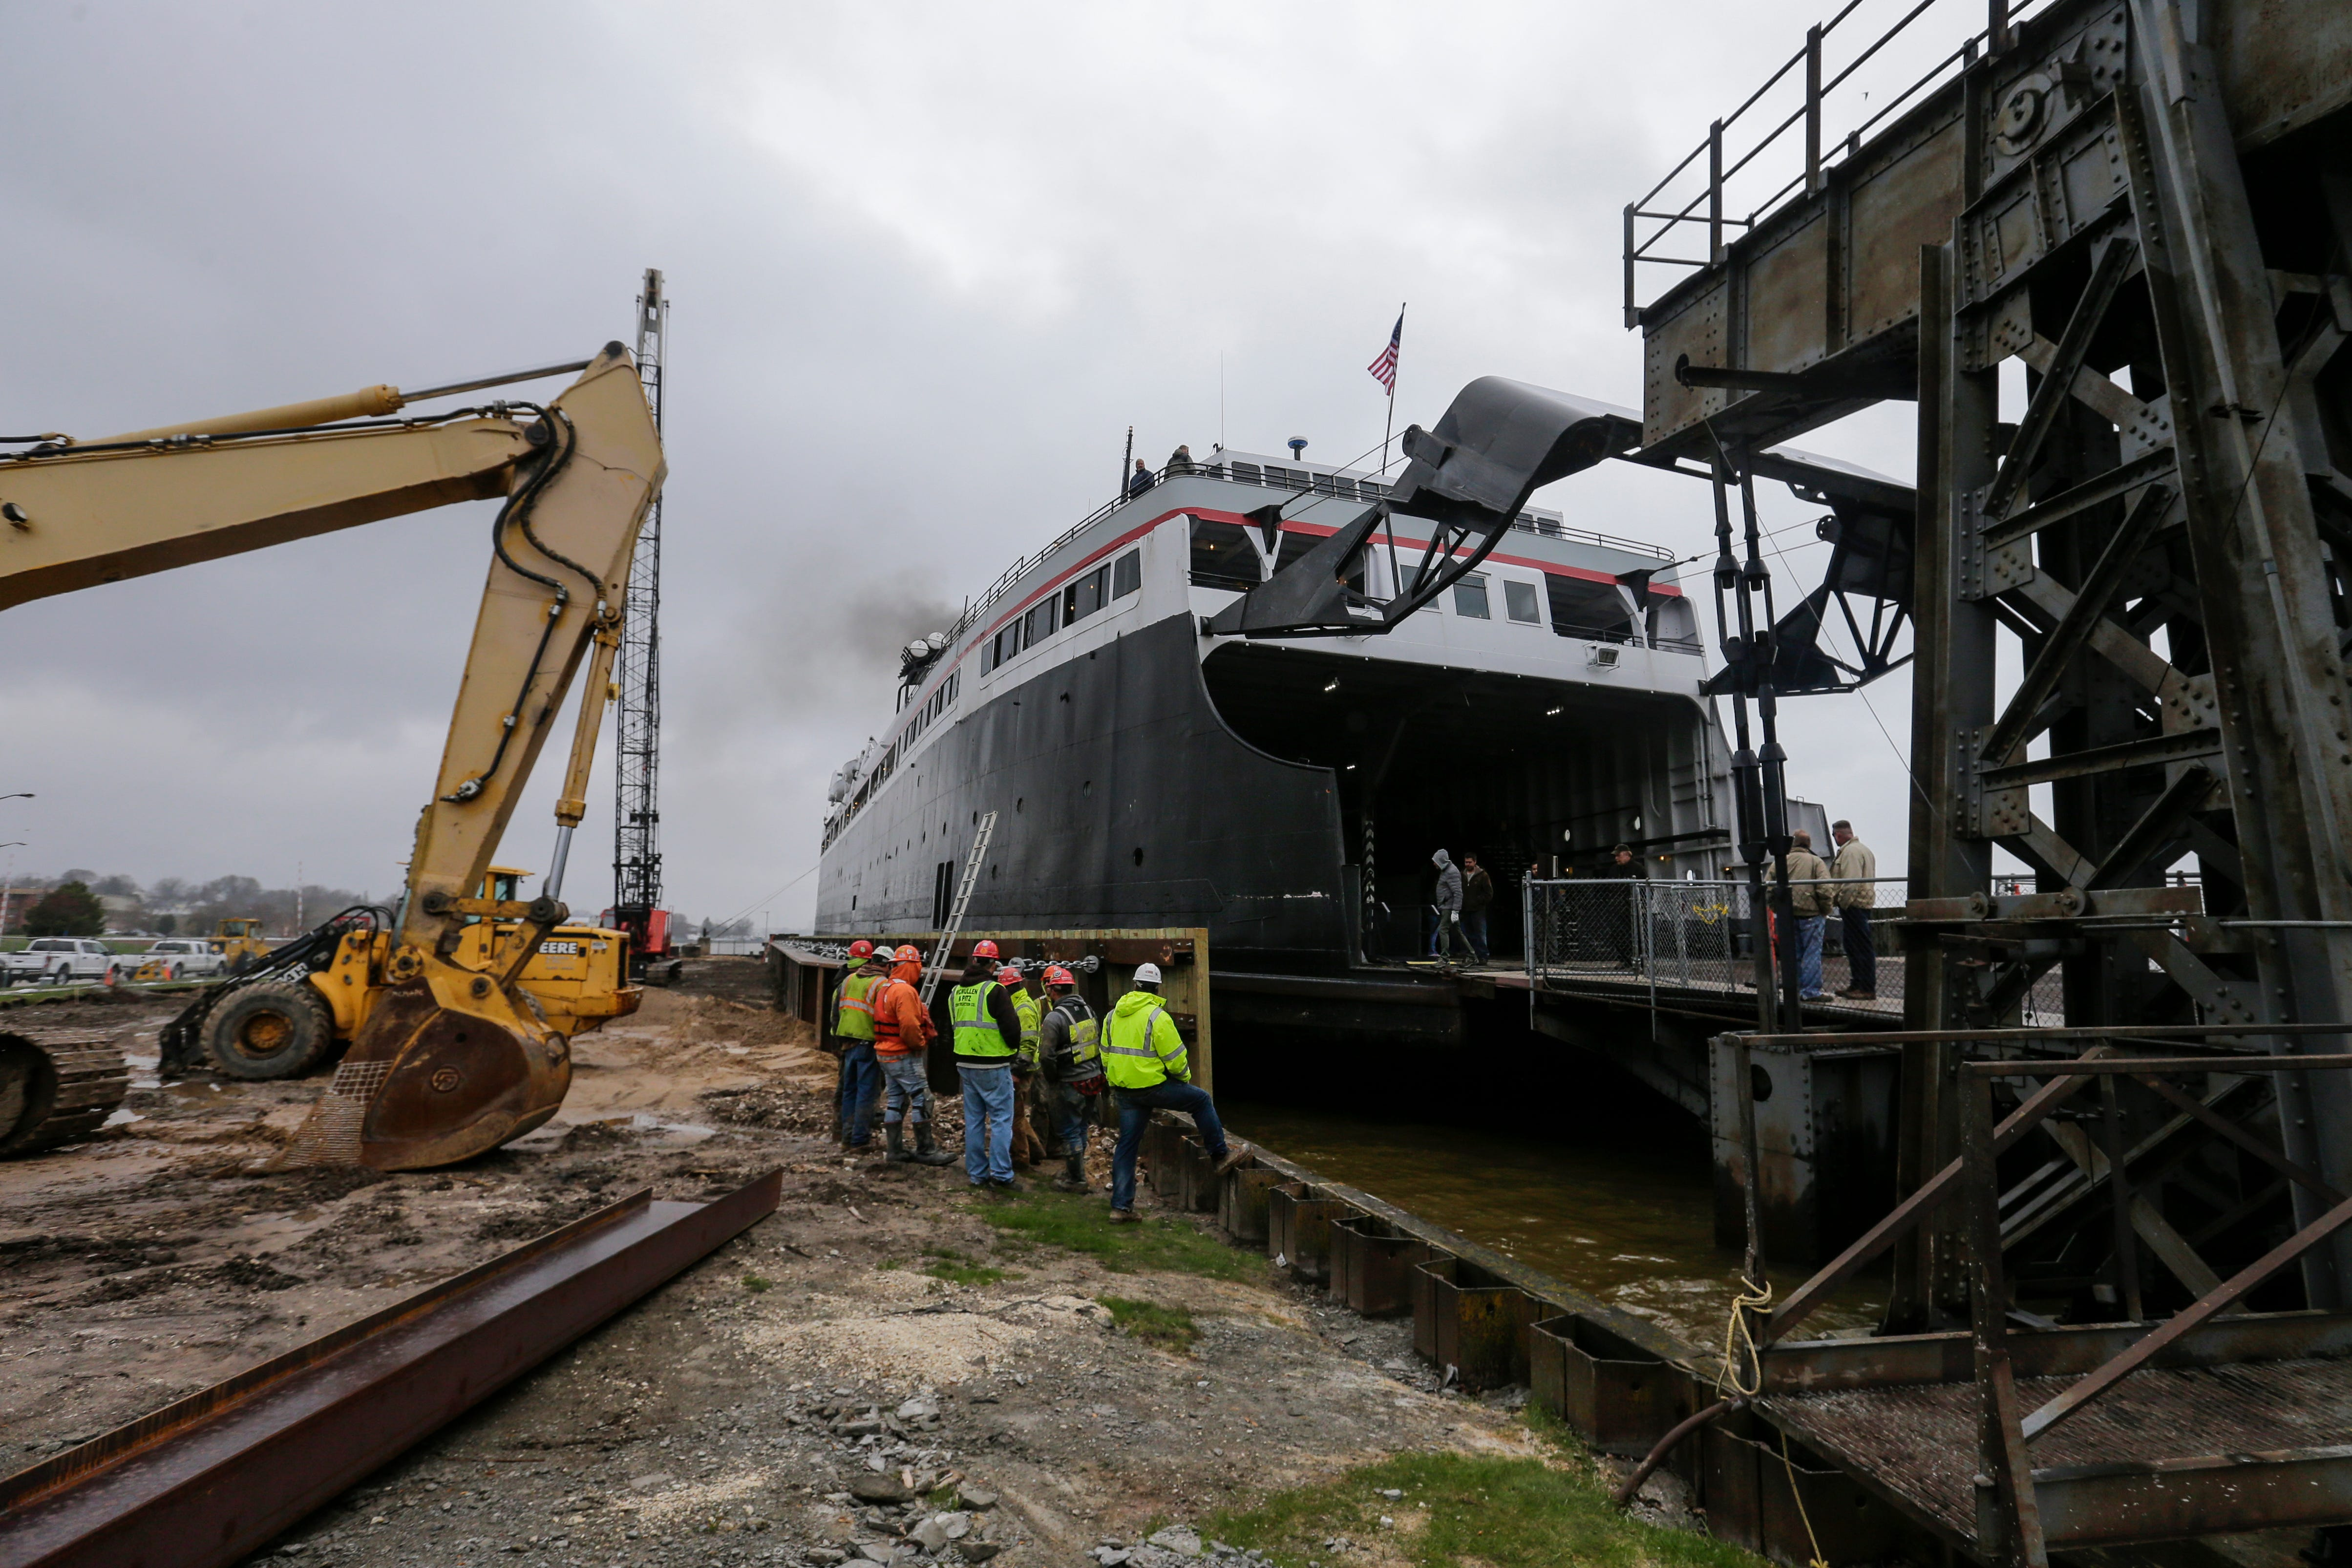 S.S. Badger car ferry tests newly constructed Manitowoc dock before first sail